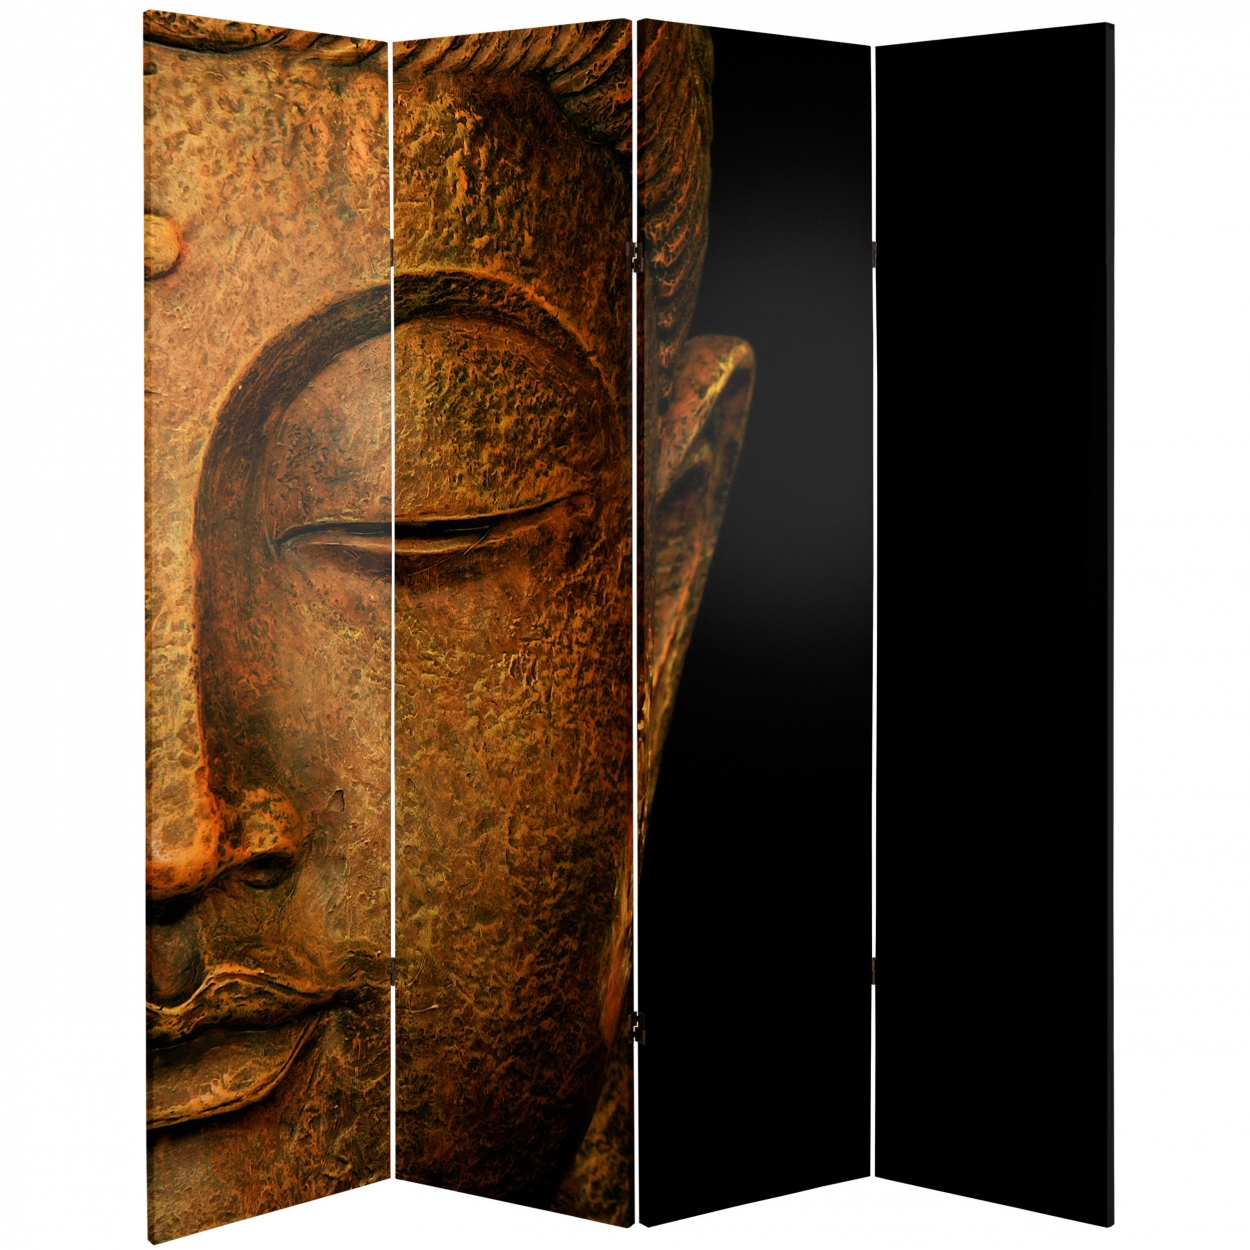 Buy 6 ft Tall Buddha and Ganesh Canvas Room Divider Online CAN